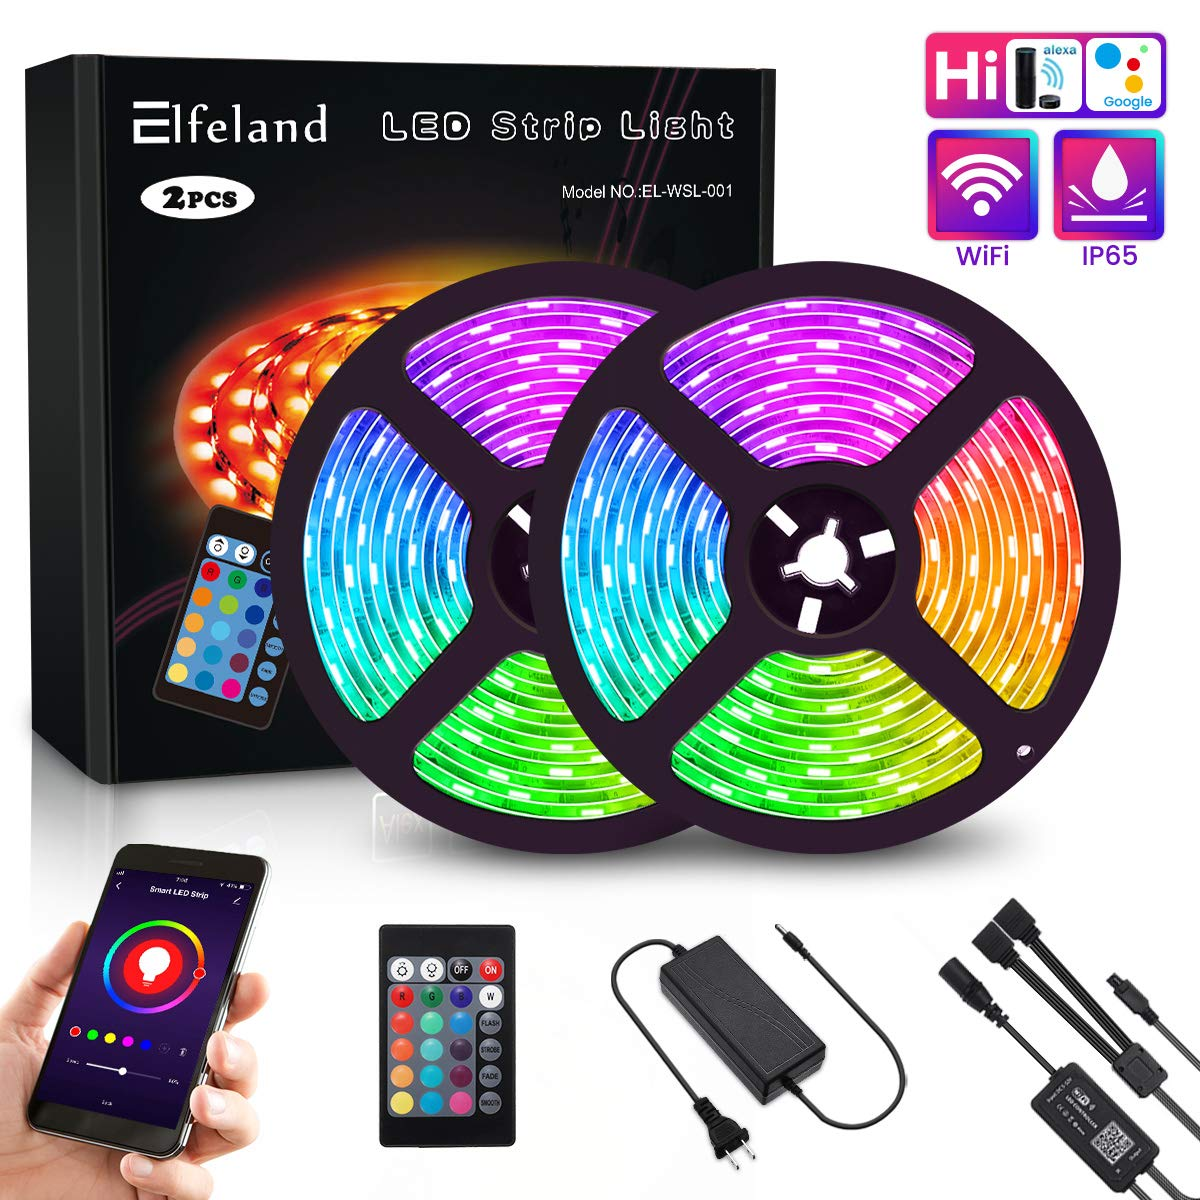 LED Strip Lights, Elfeland WiFi 32.8FT 10M 300 LEDs SMD 5050 Color Changing Kit Work with Alexa Google Assistant Strip Lights Wireless Phone APP Controlled Rope Light Waterproof Flexible Tape Lights by Elfeland